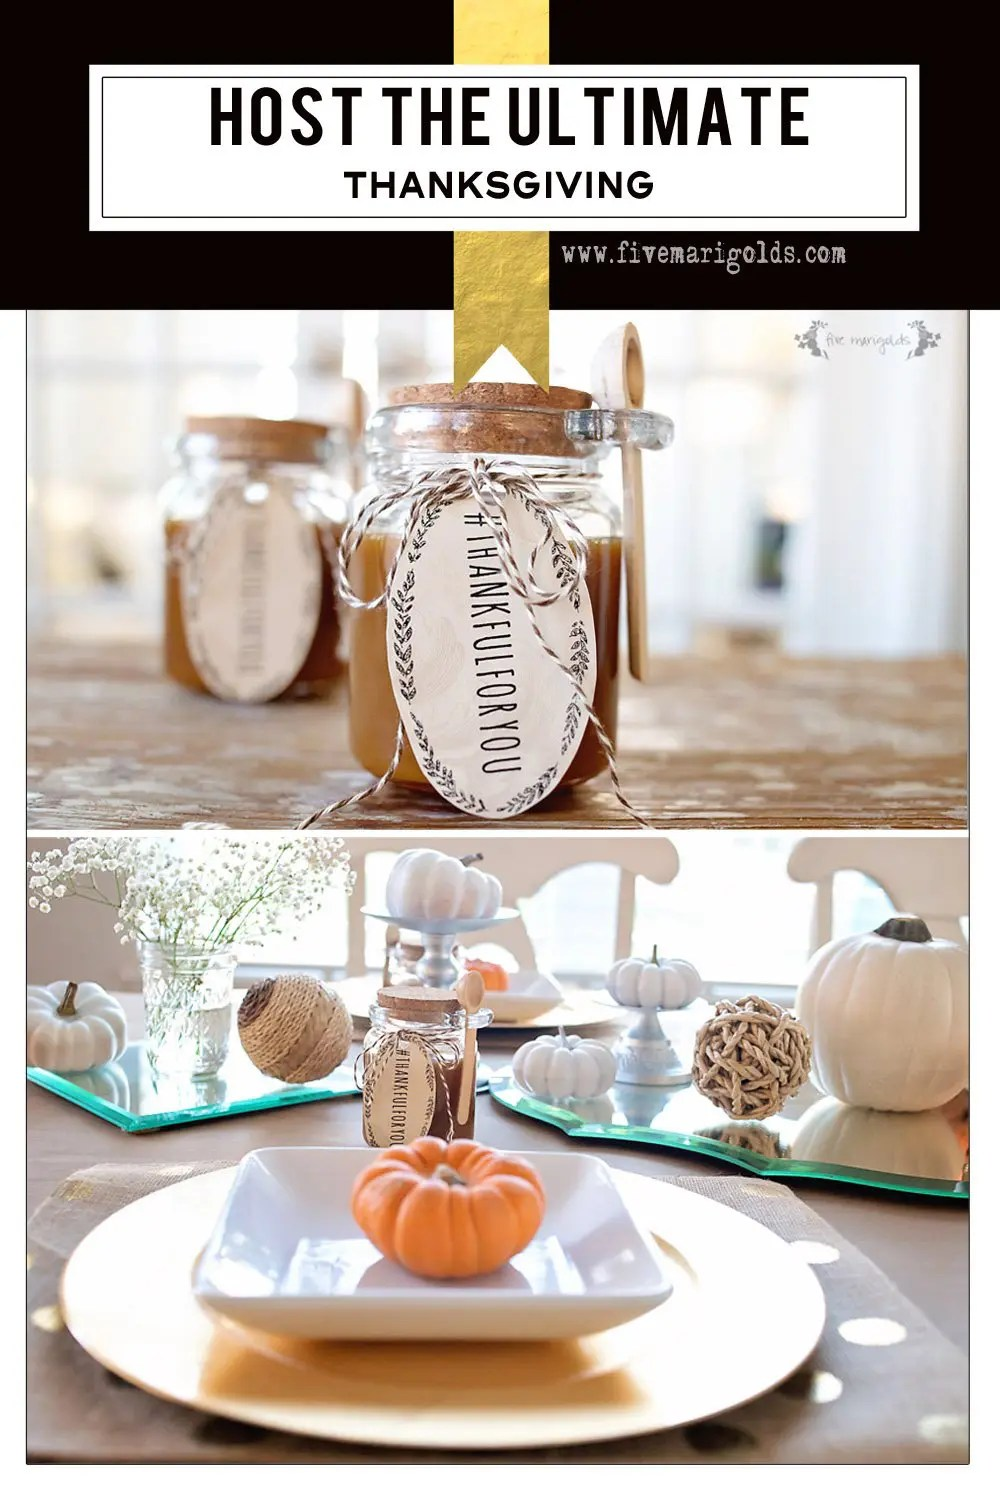 How to host the ultimate Thanksgiving with free printable favor tags #ad #Prep4Gathering